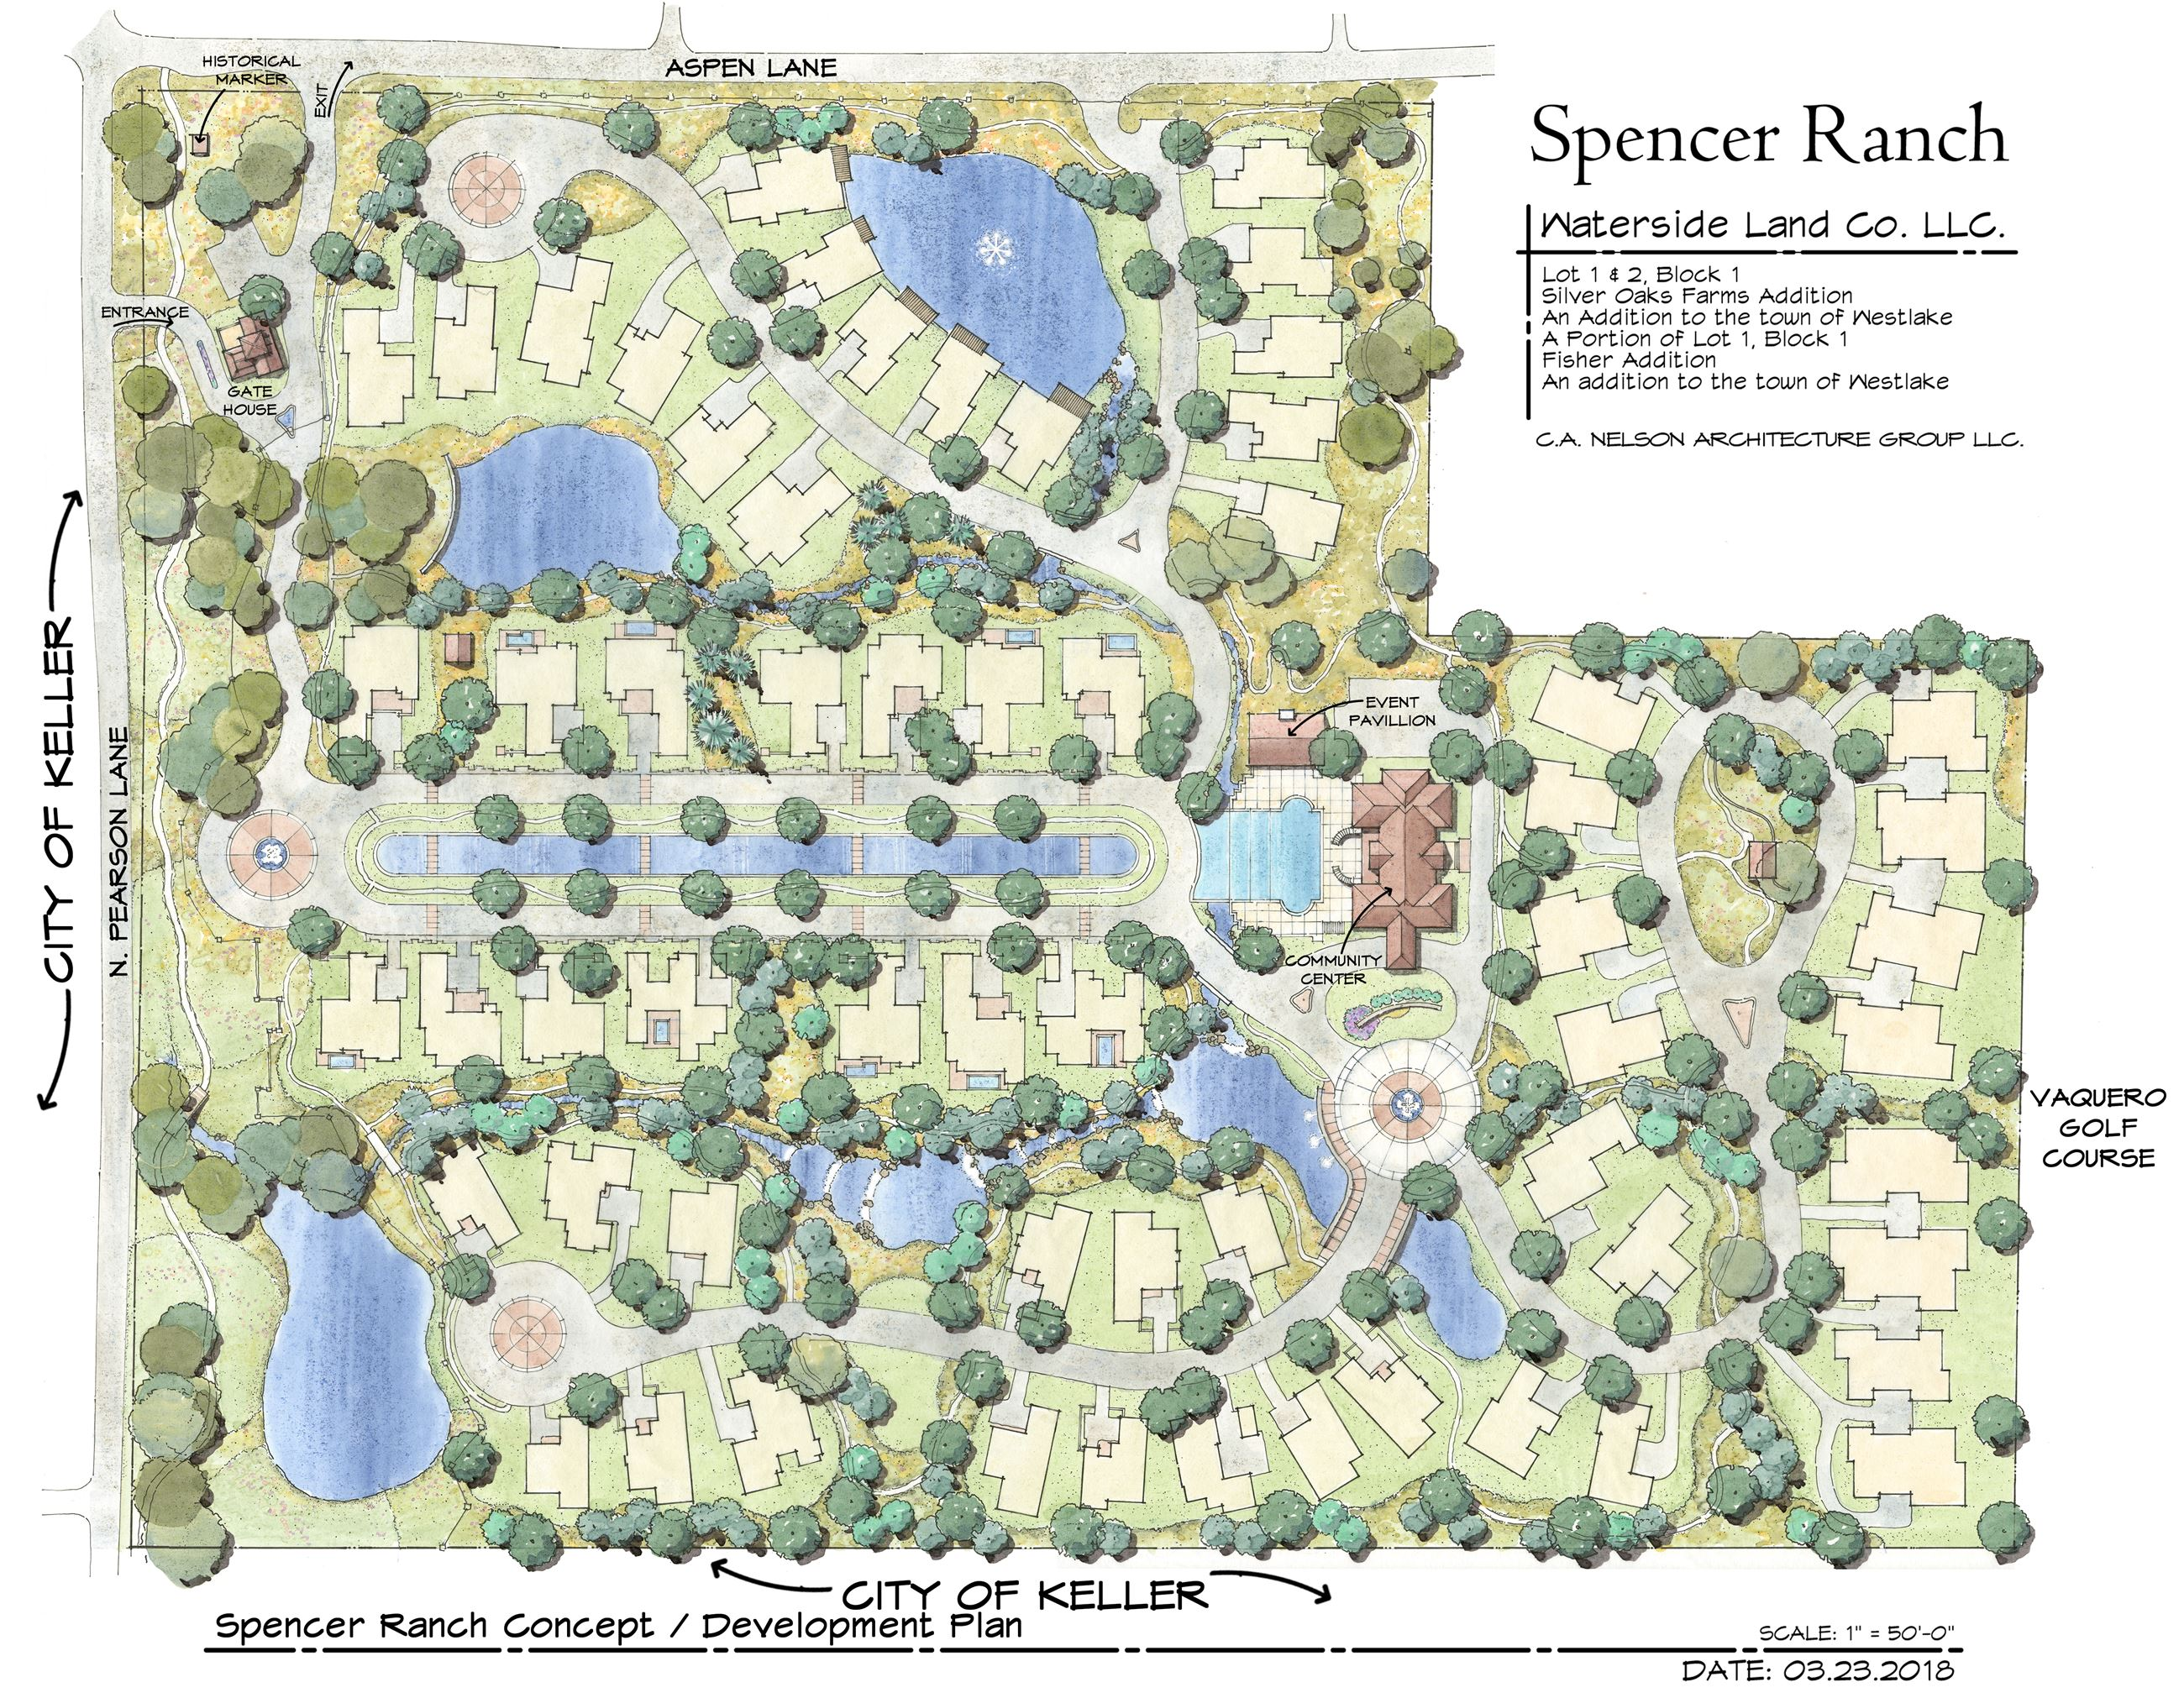 Spencer Ranch Concept/Development Plan